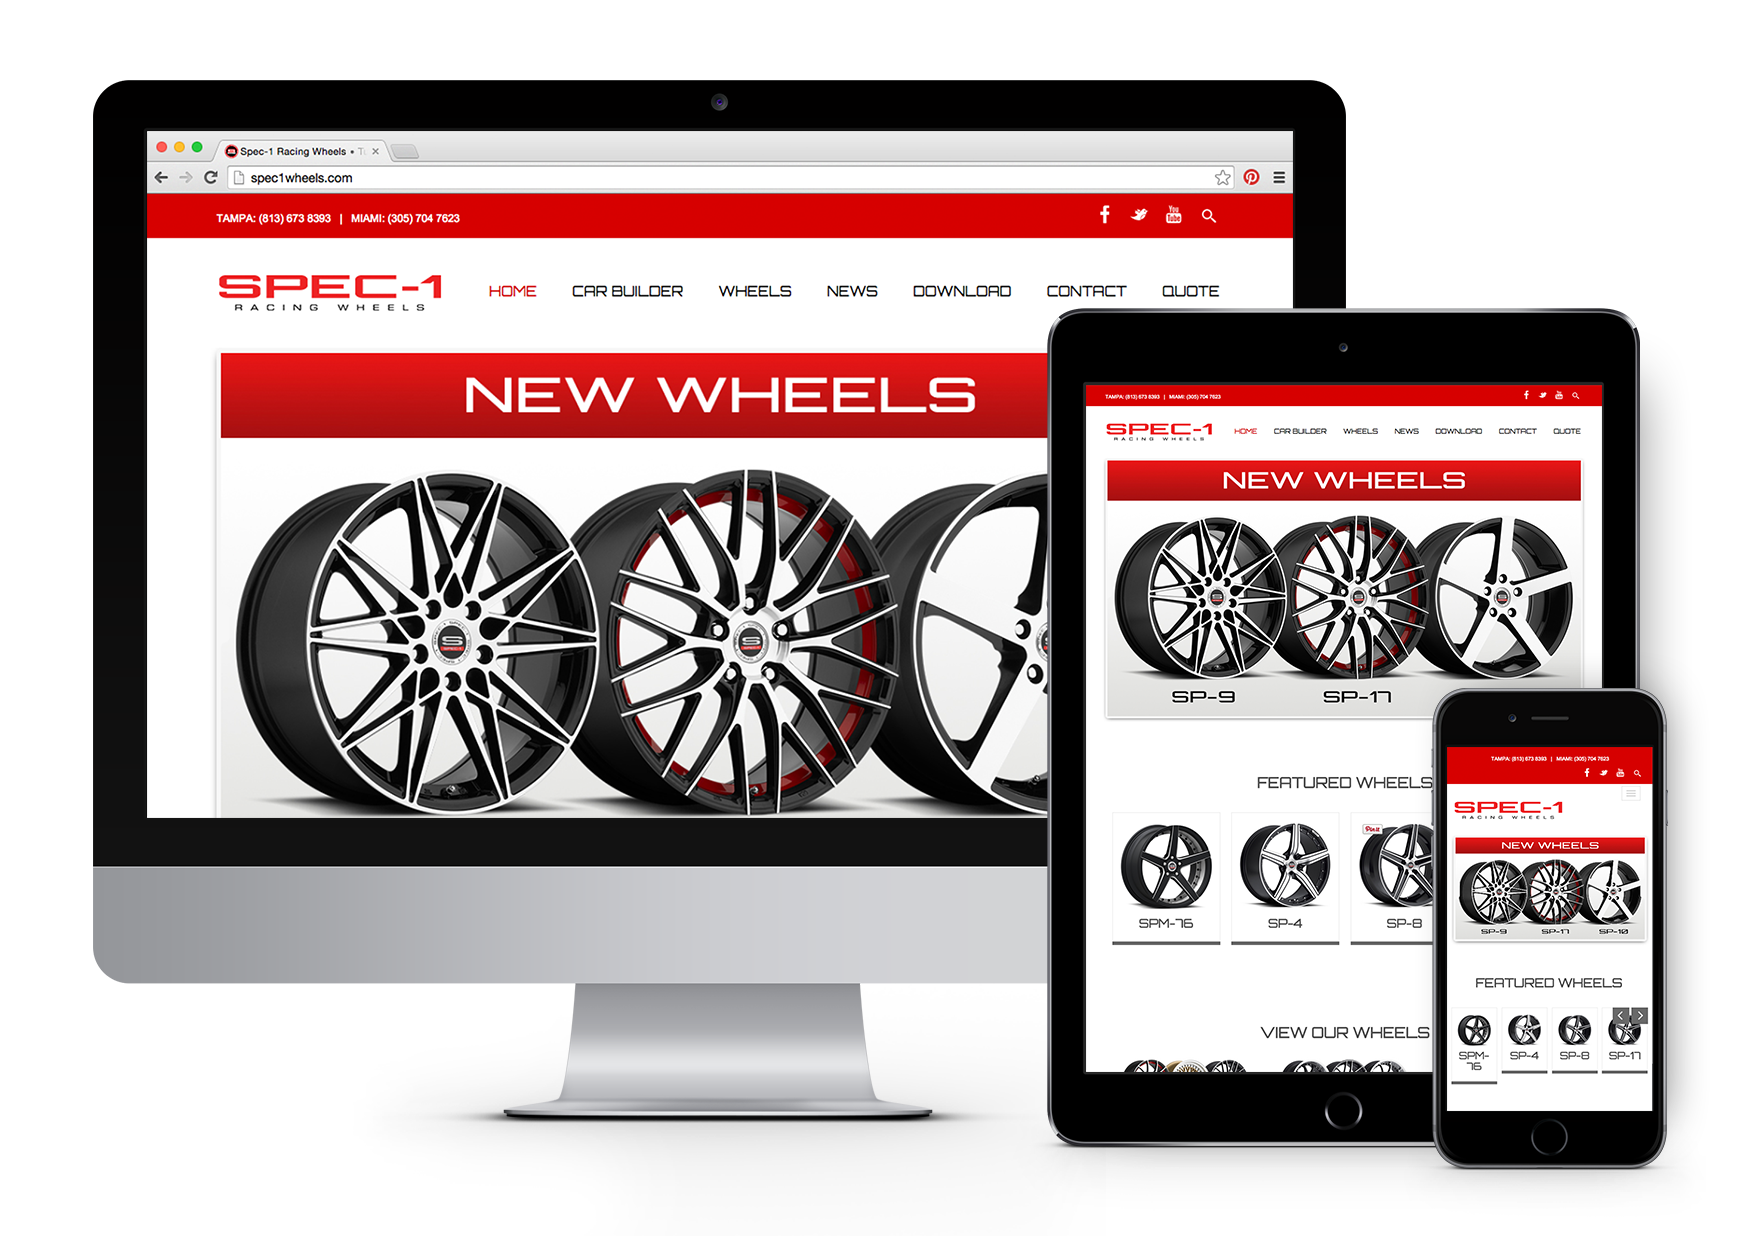 Spec-1 Racing Wheels Responsive Website Design